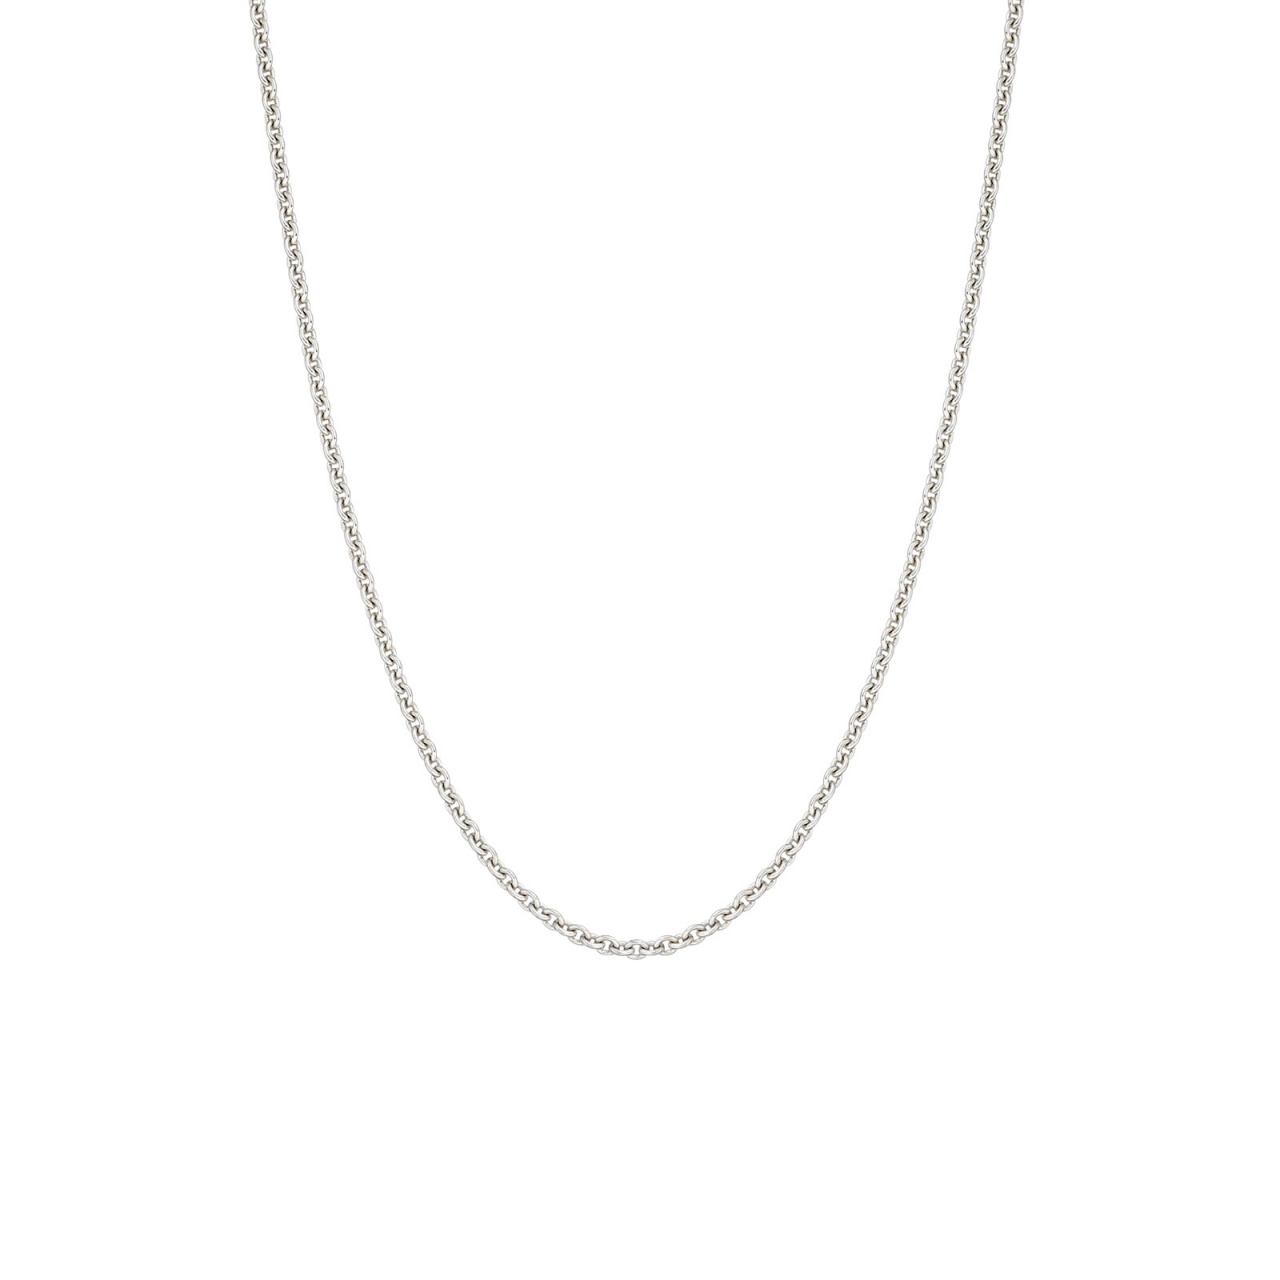 18 Carat White Gold Trace Chain 1mm Width-1